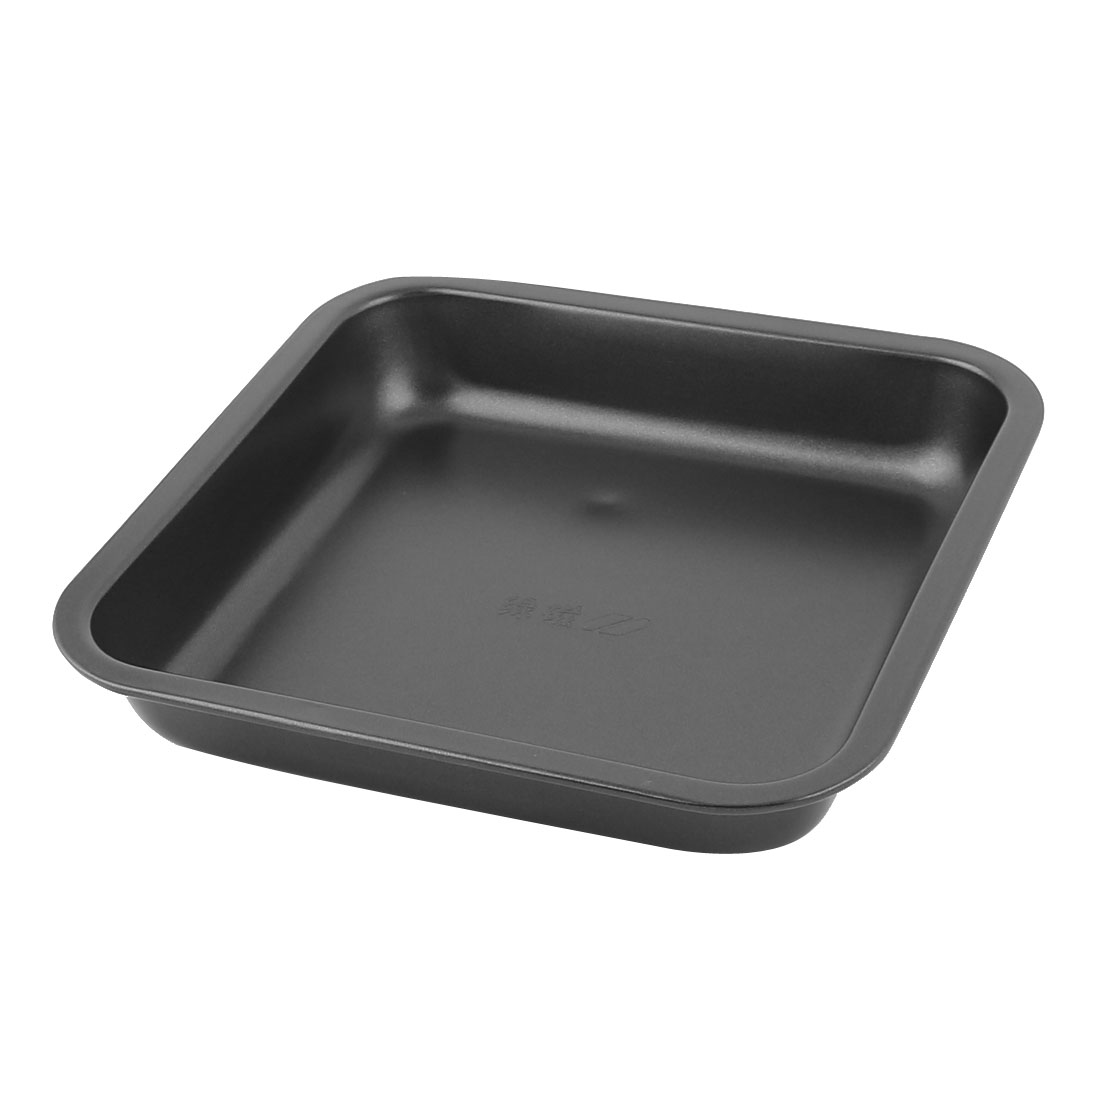 Home Bakeware Metal Square Shaped Oven Bread Pizza Baking Mold Pan Tray